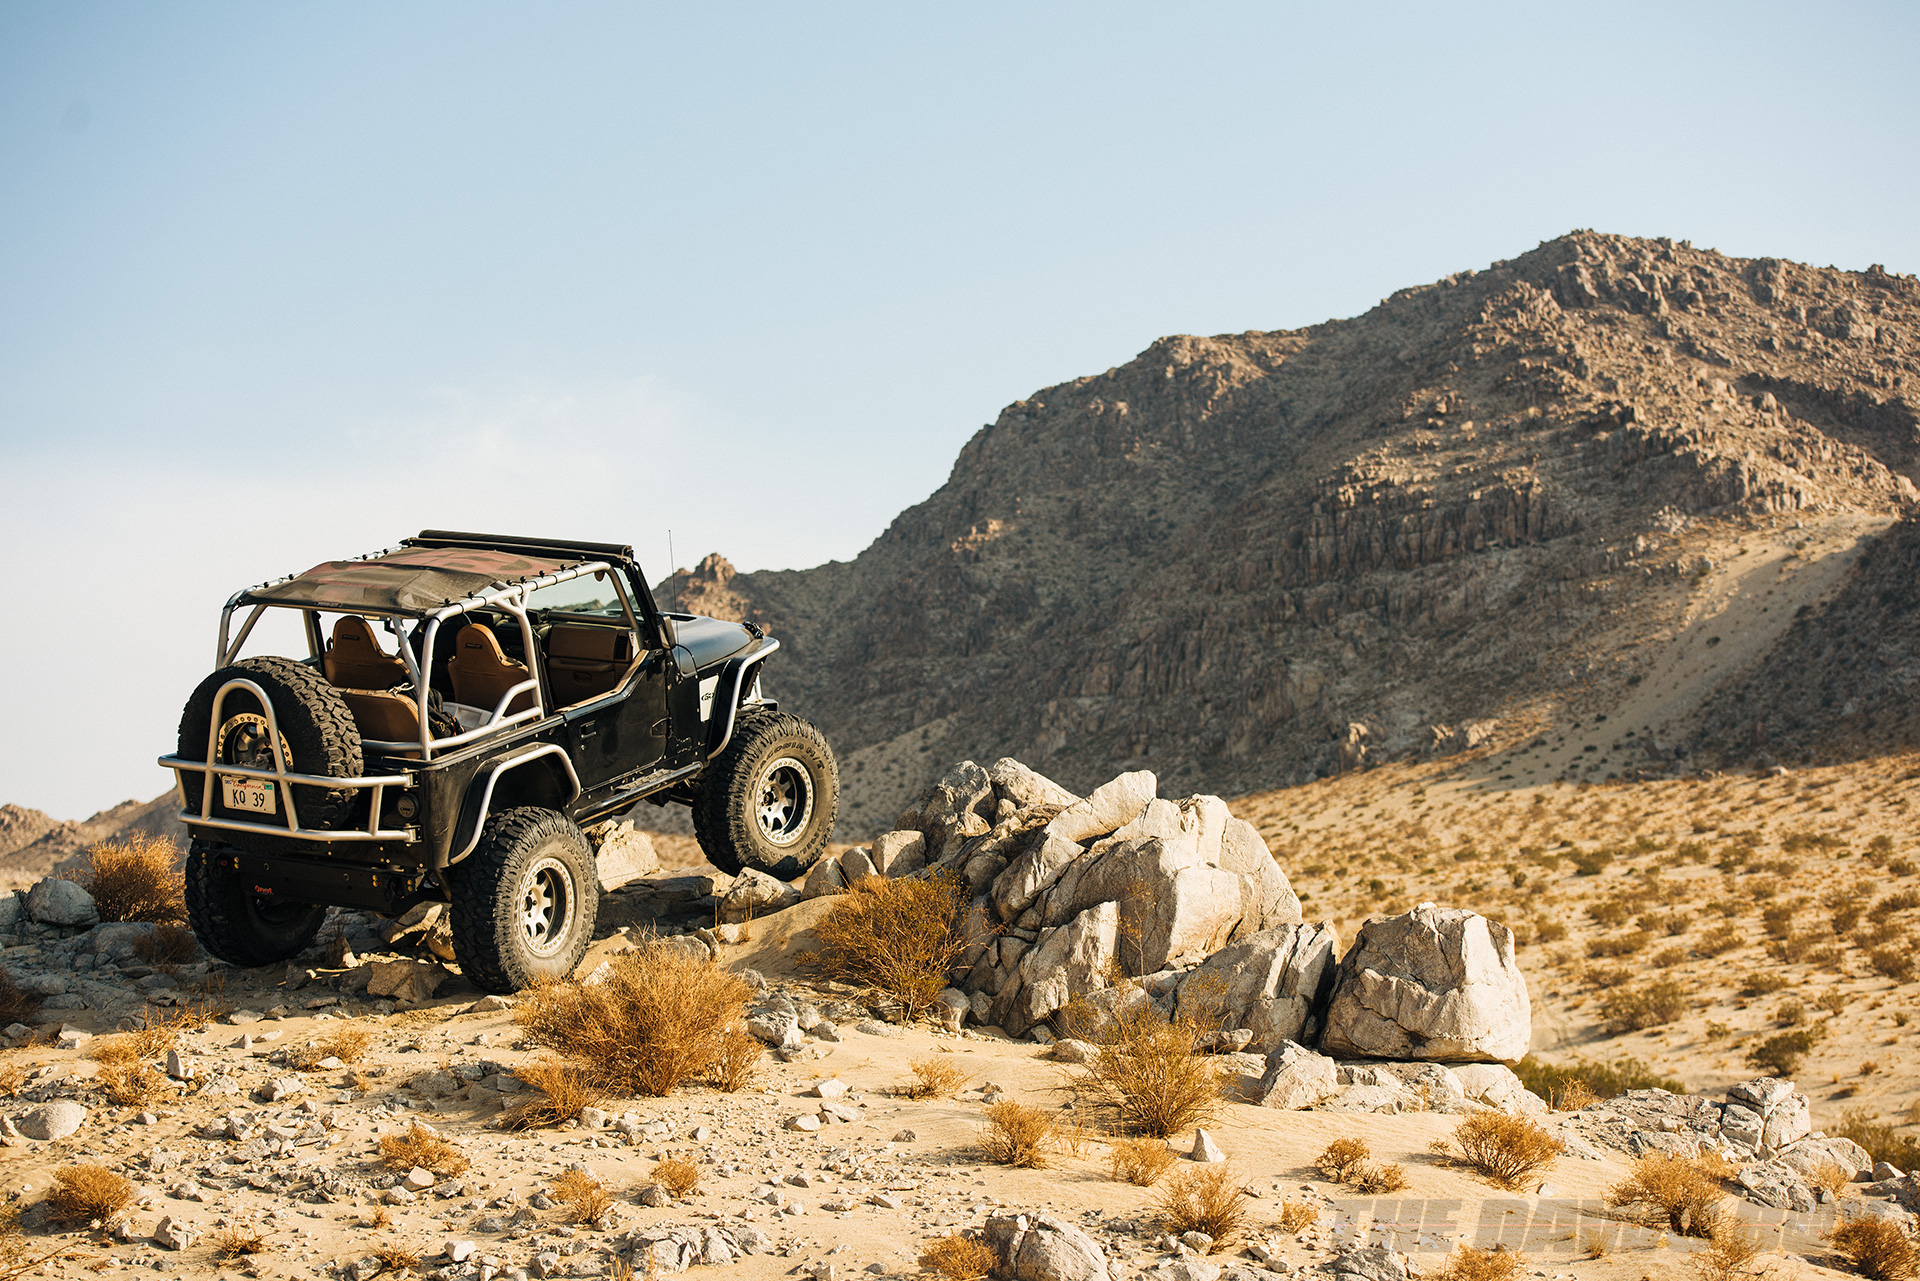 Jason Zamora's 2000 Jeep Wrangler TJ, On The Rocks